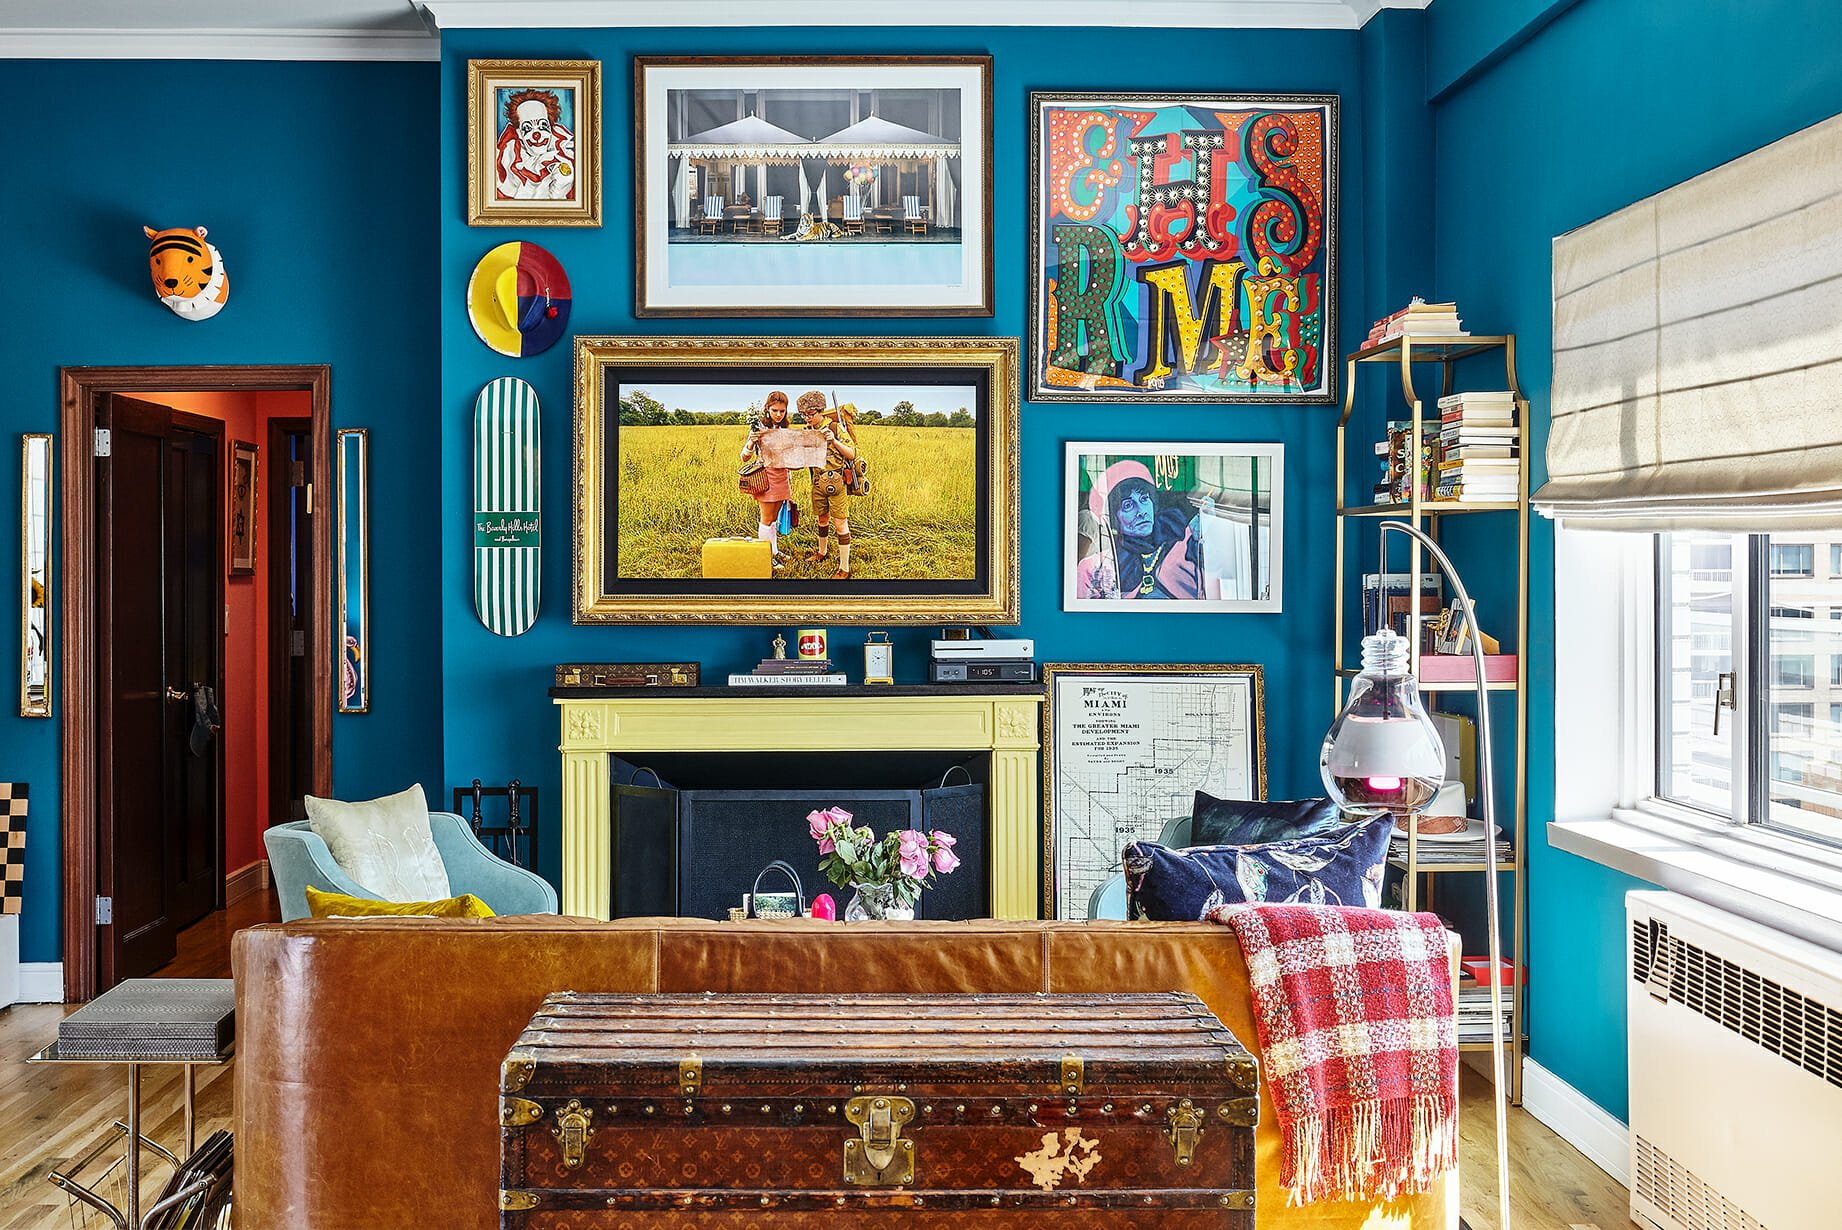 Turquoise Walls and Snake Rugs: The Royal Tenenbaum of Apartment Tours